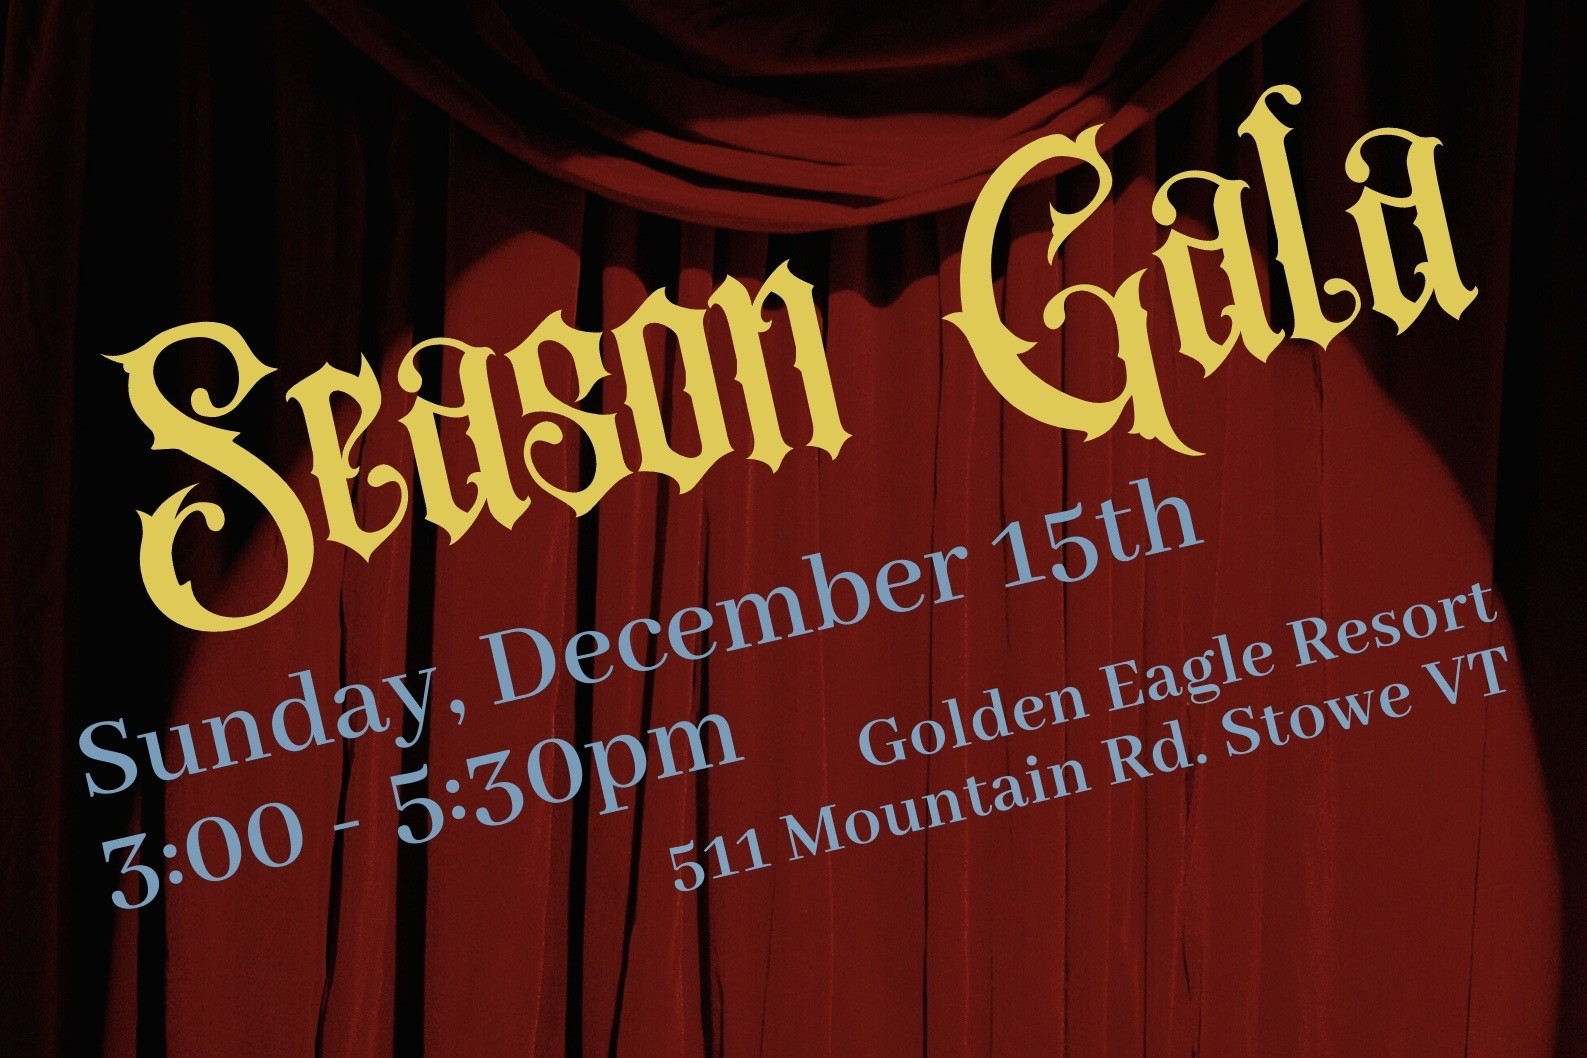 Season Gala, Sunday, Dec. 15 at 3:00 p.m. at Golden Eagle Resort